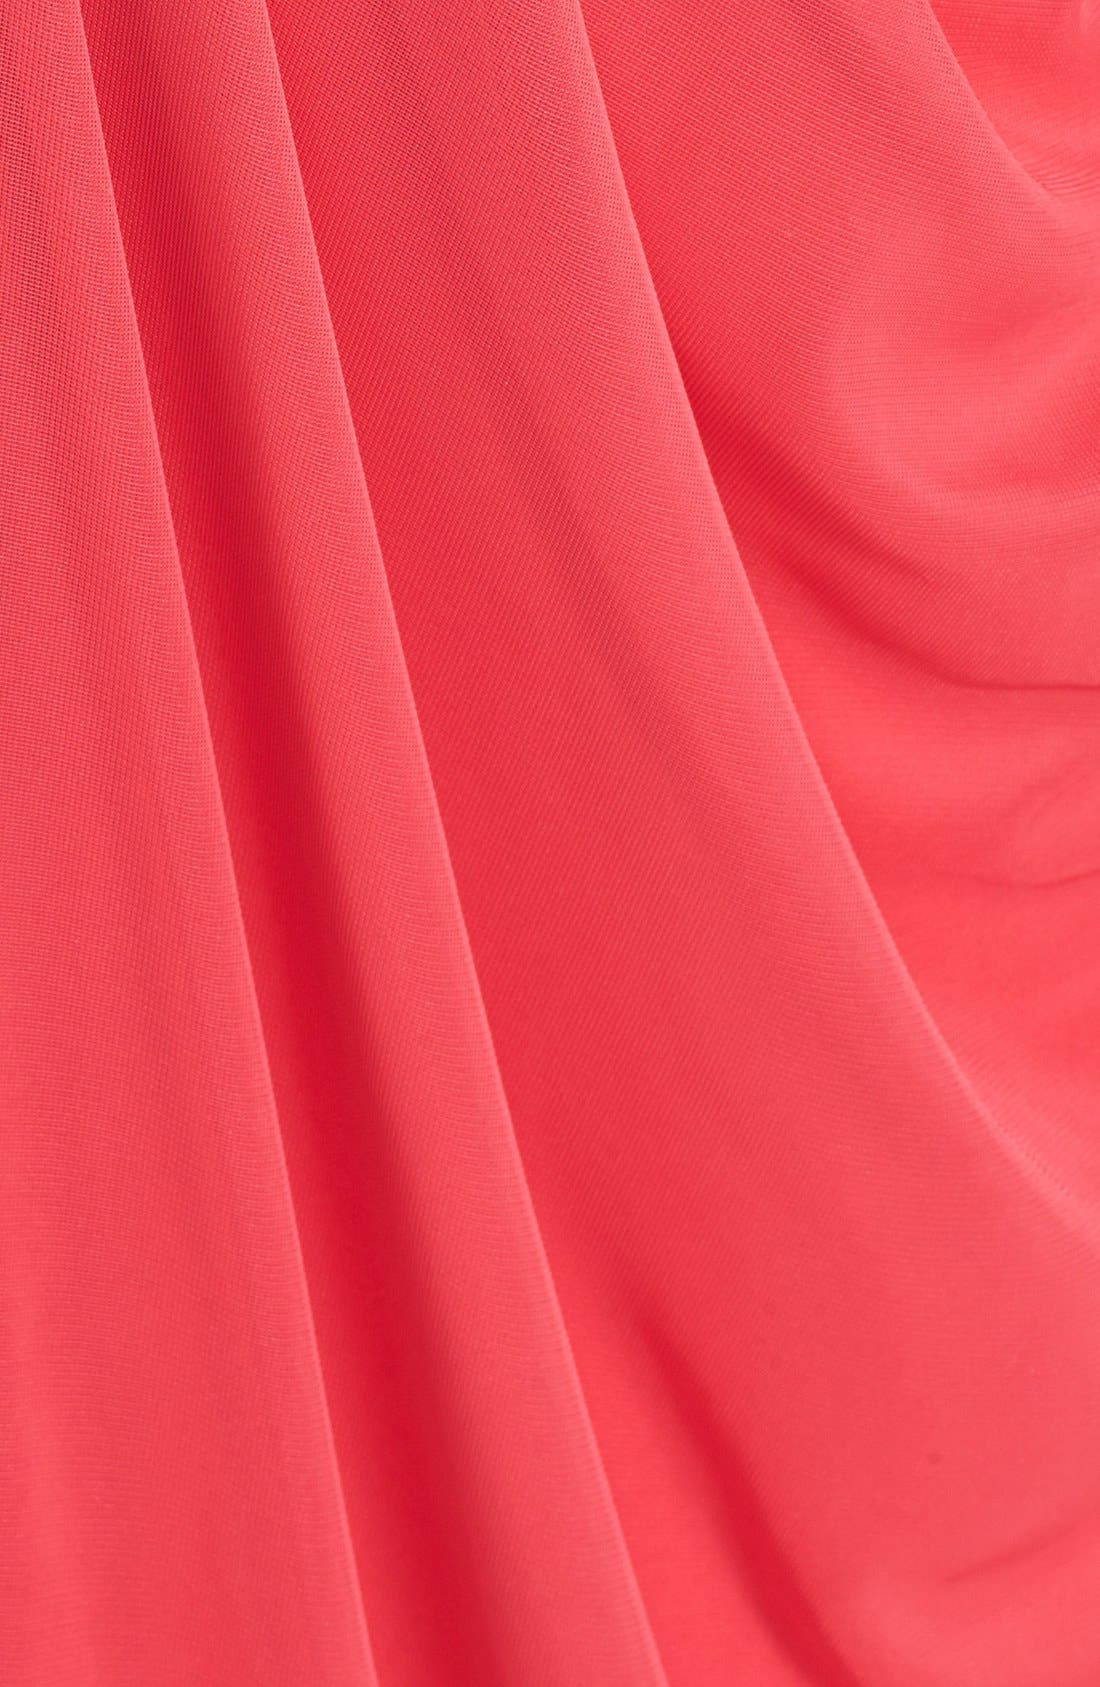 Alternate Image 3  - JS Boutique Pleated & Draped Jersey Chiffon Strapless Gown